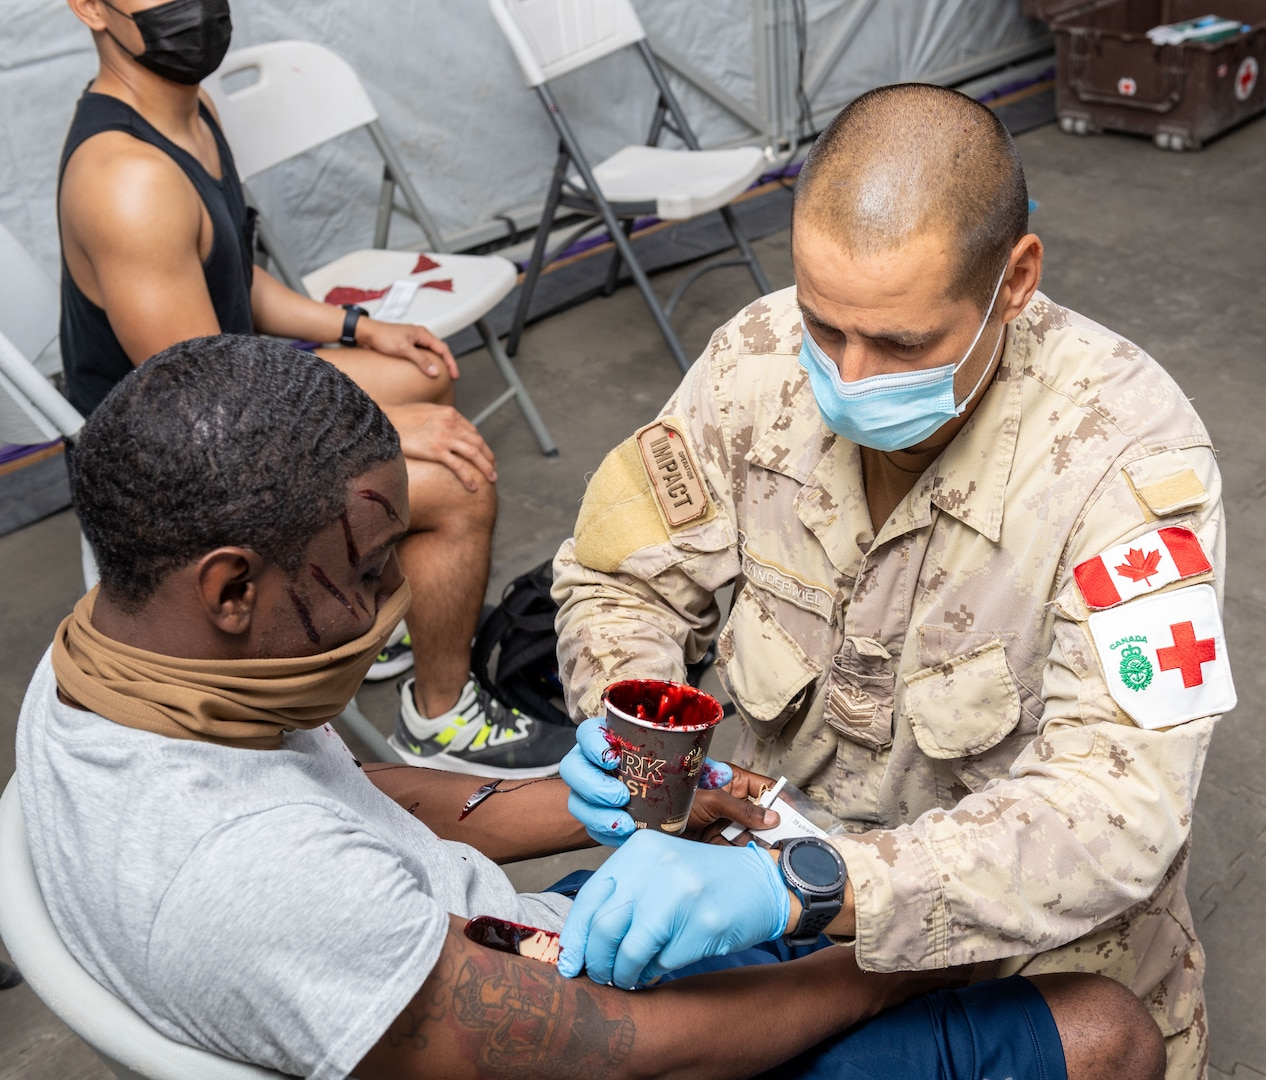 Person puts on moulage on a simulated casualty.